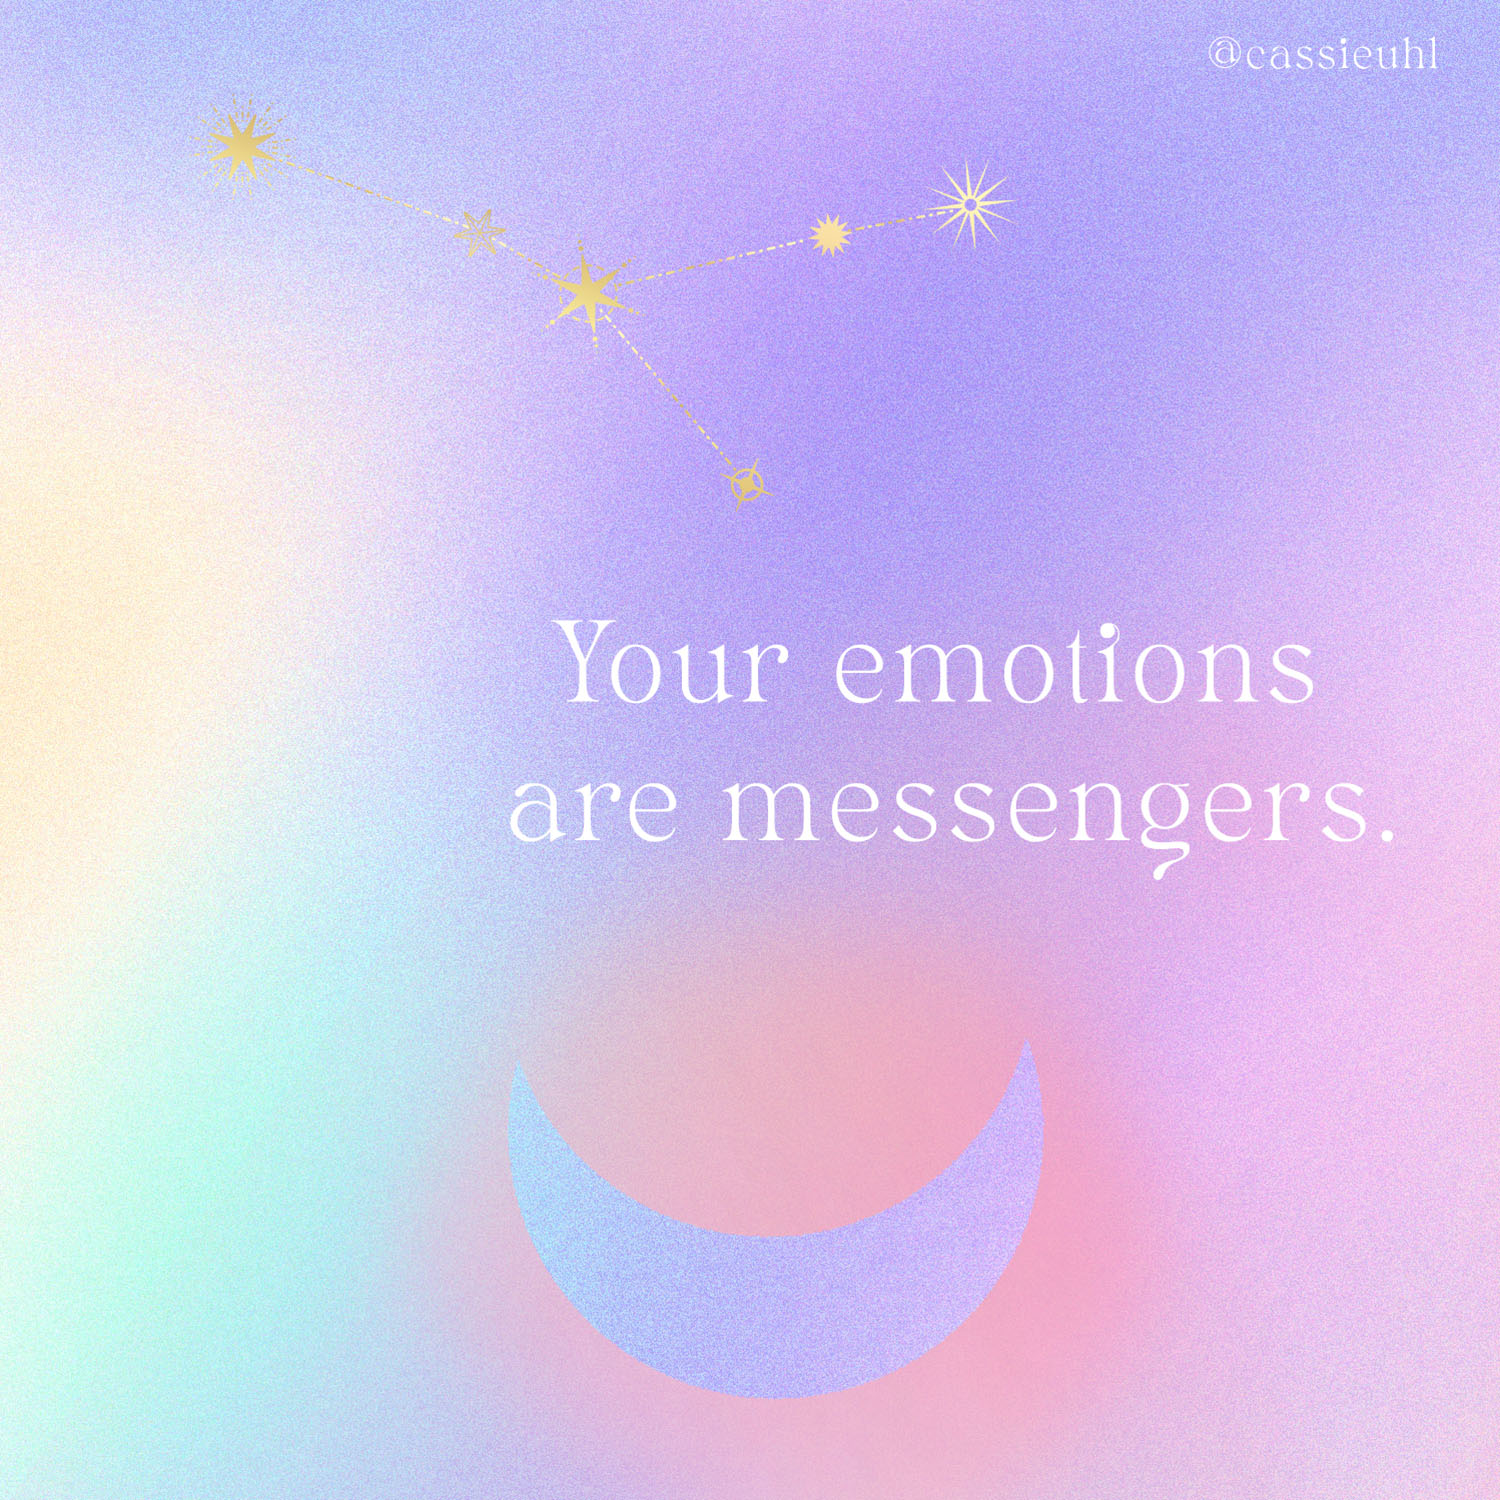 your emotions are messengers